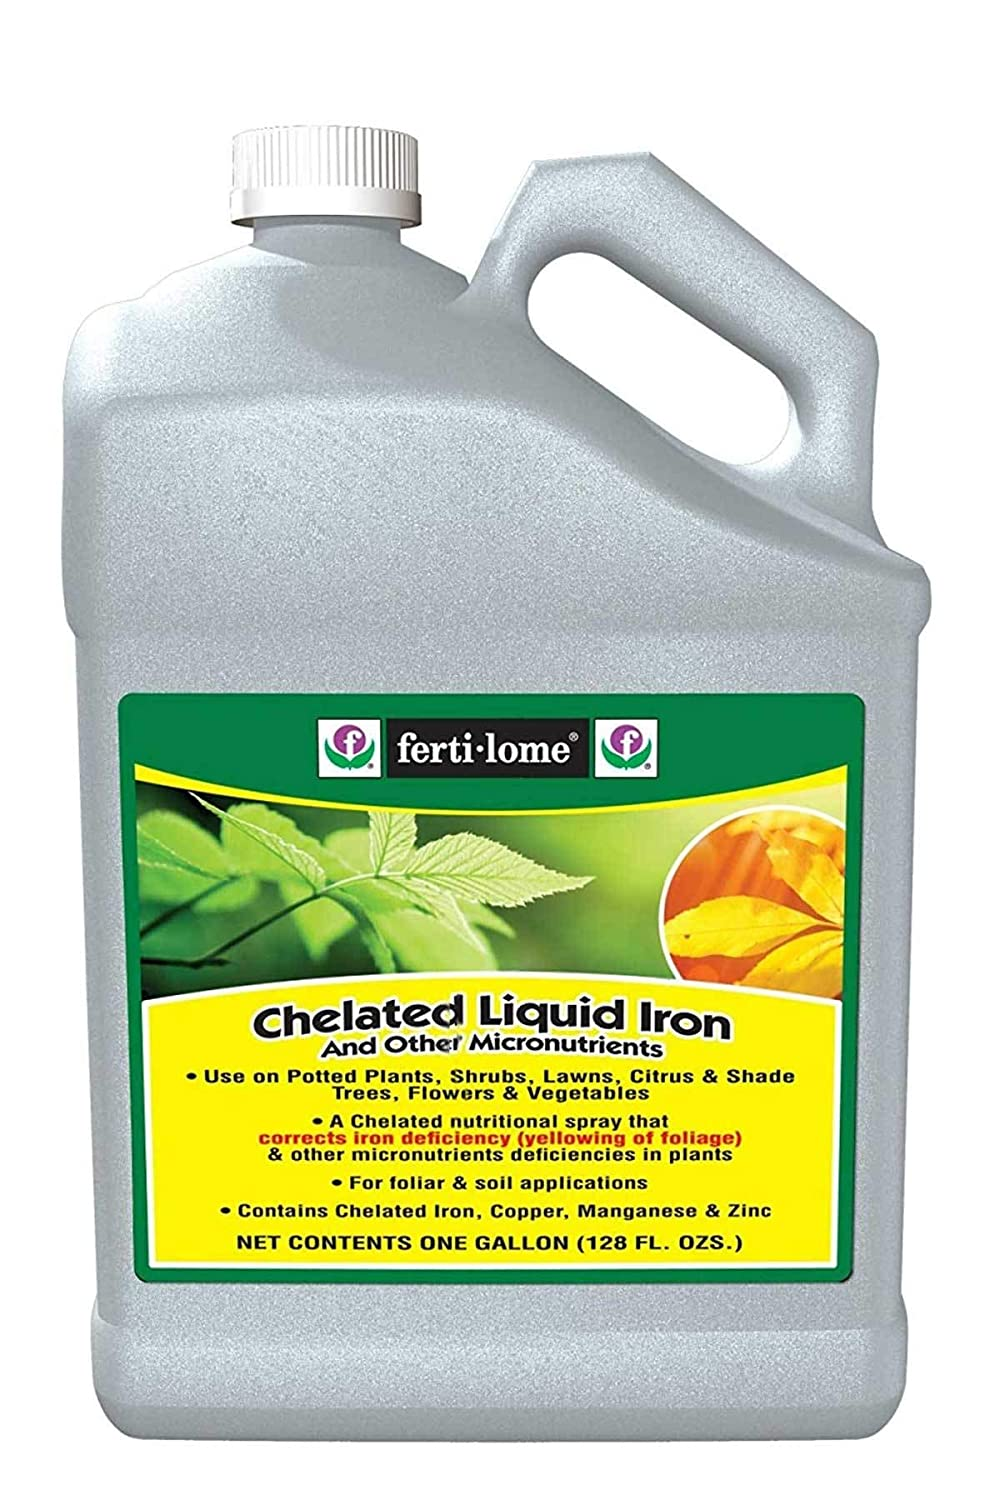 Fertilome Chelated Liquid Iron, 1 Gallon